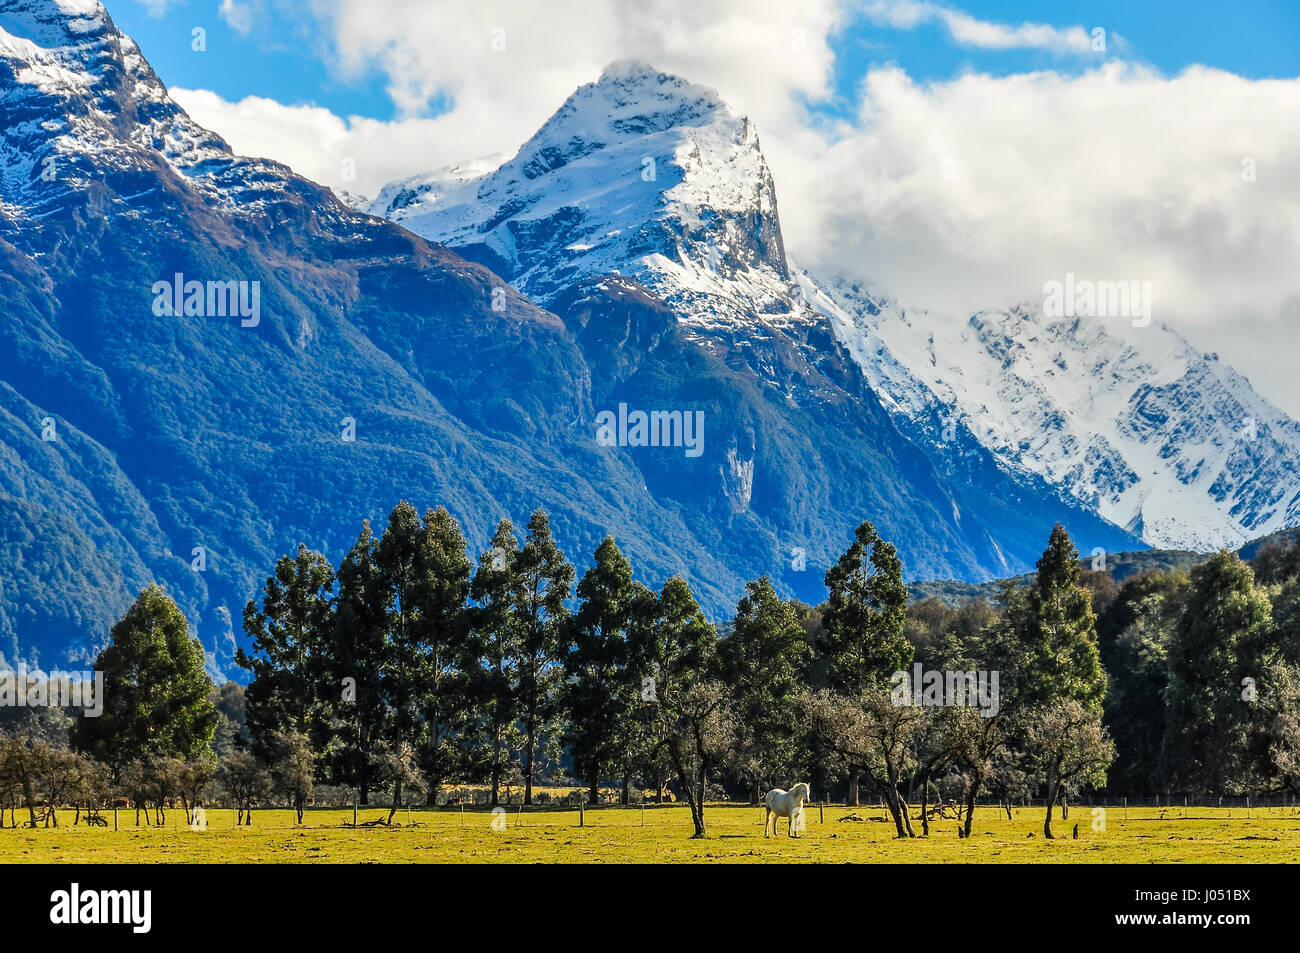 White horse in front of snowy peaks in Lord of the Rings film location, Glenorchy, New Zealand - Stock Image